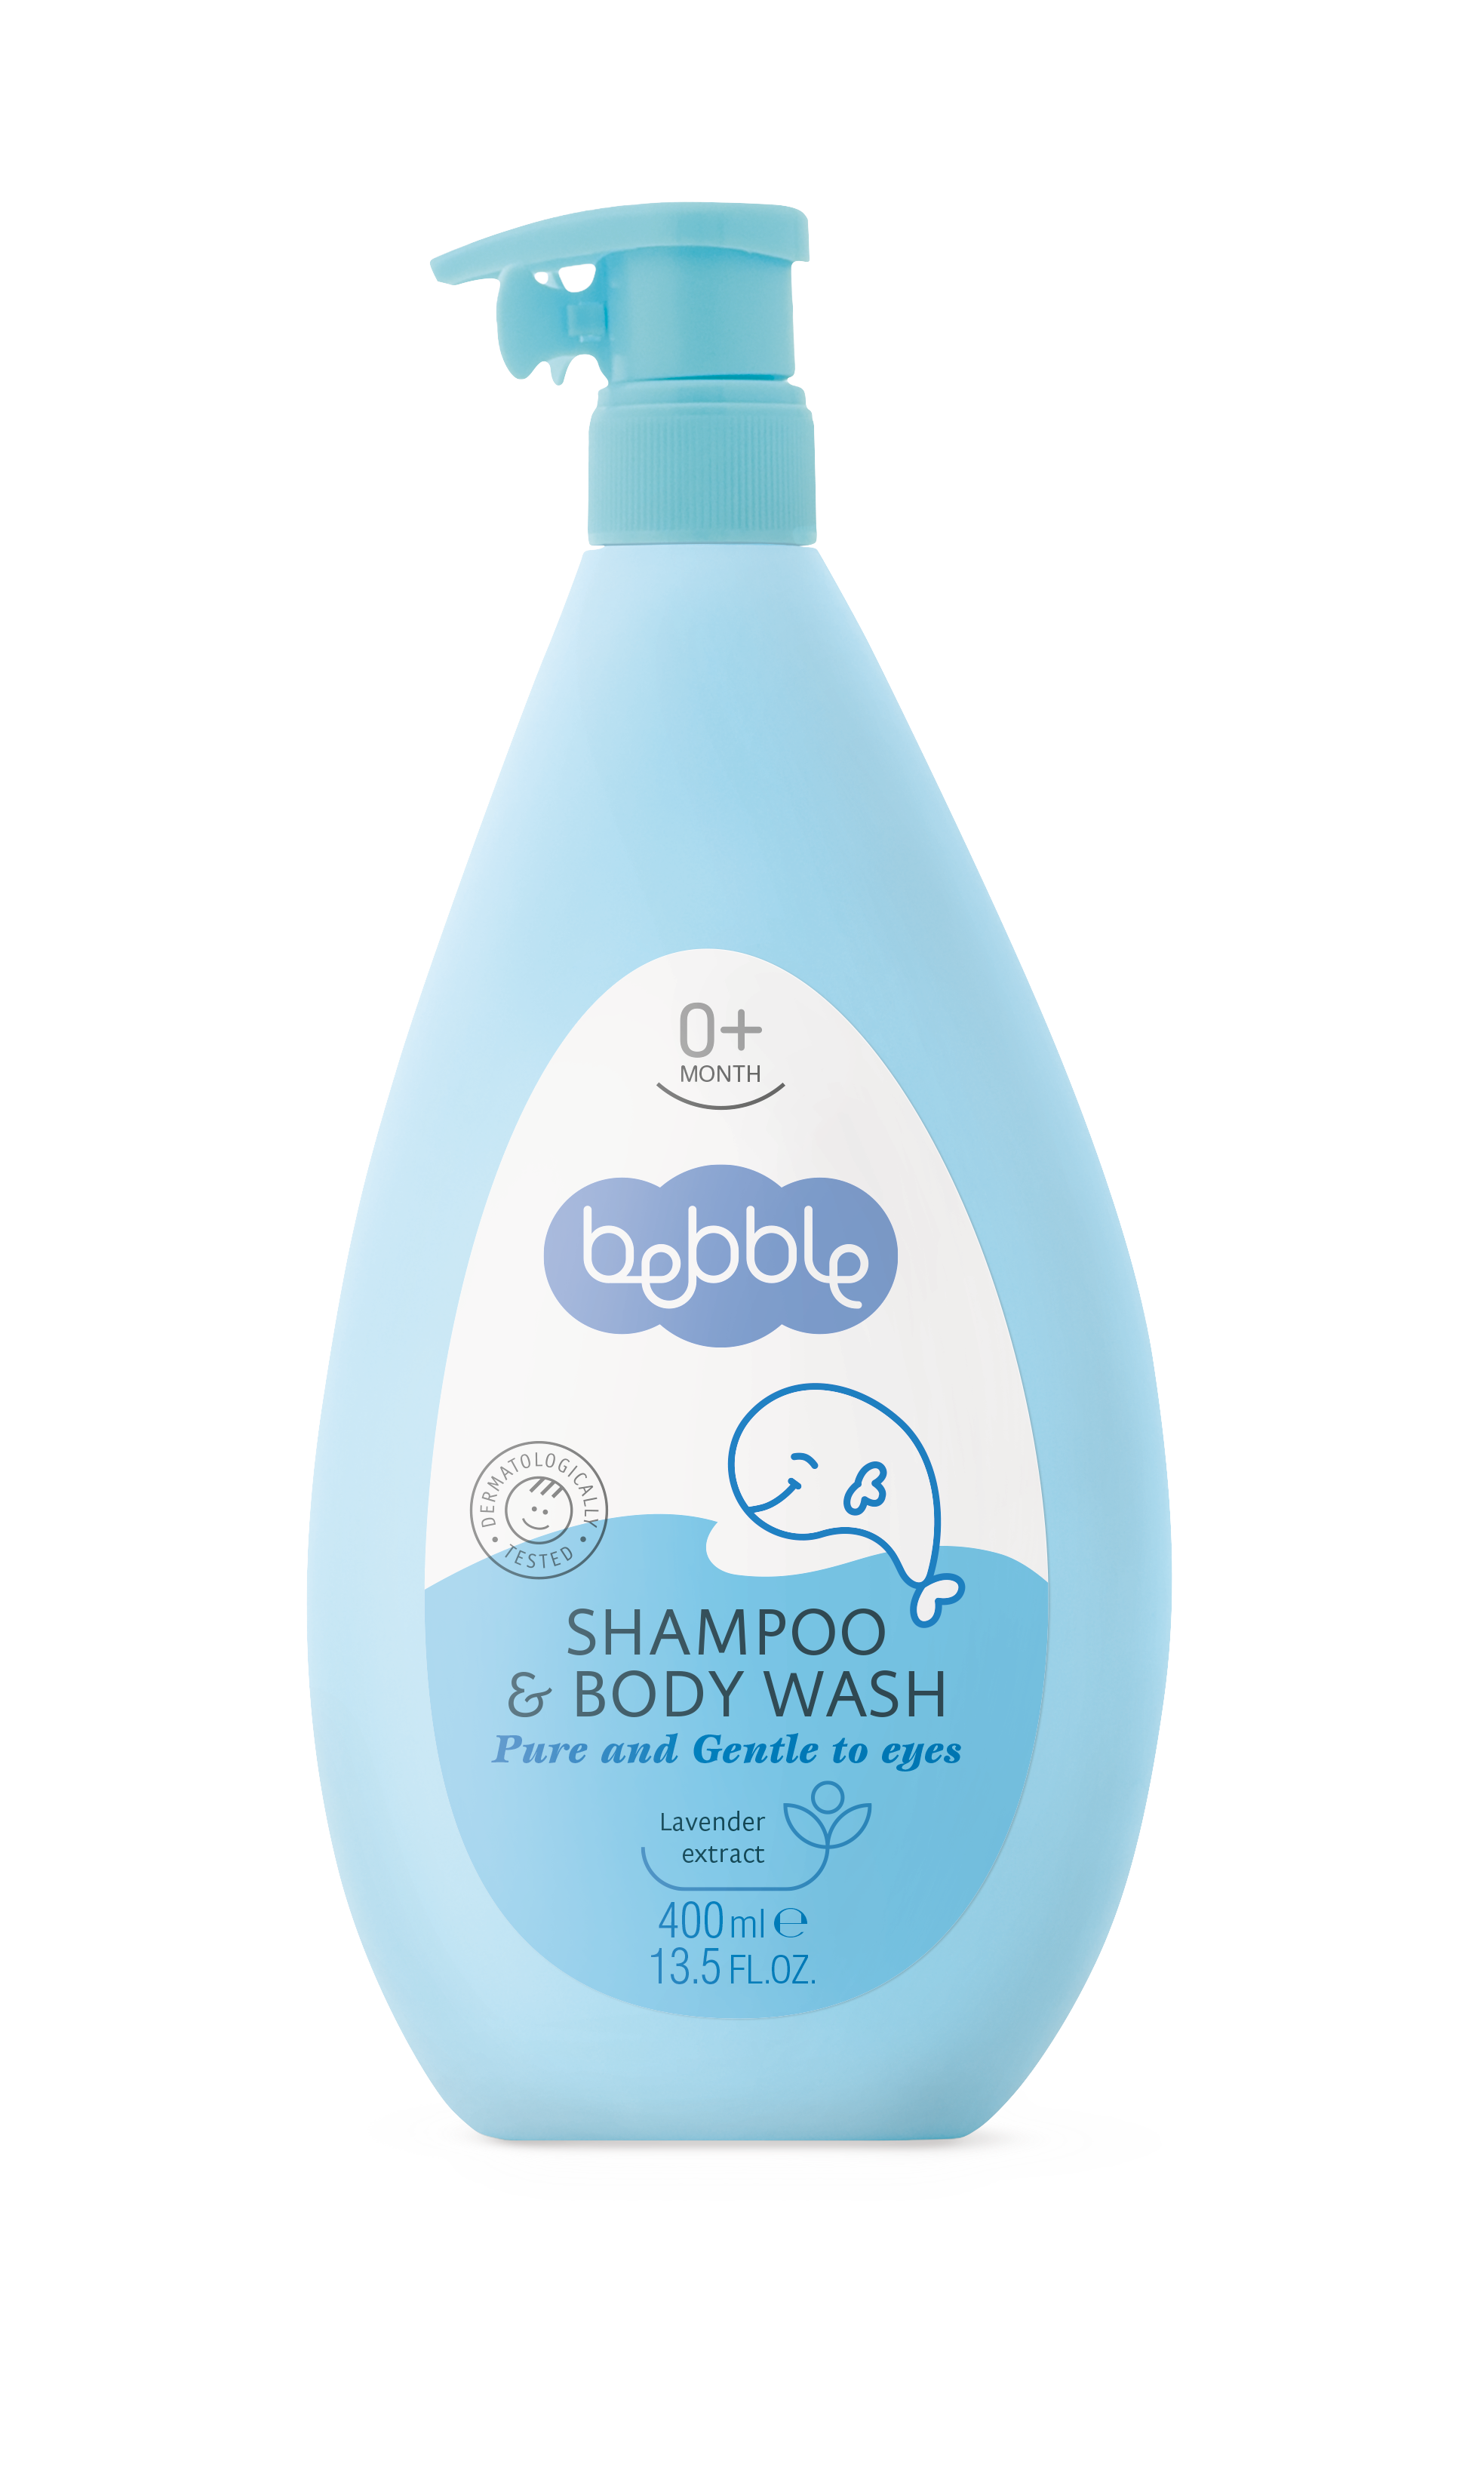 Shampoo & Body Wash 400